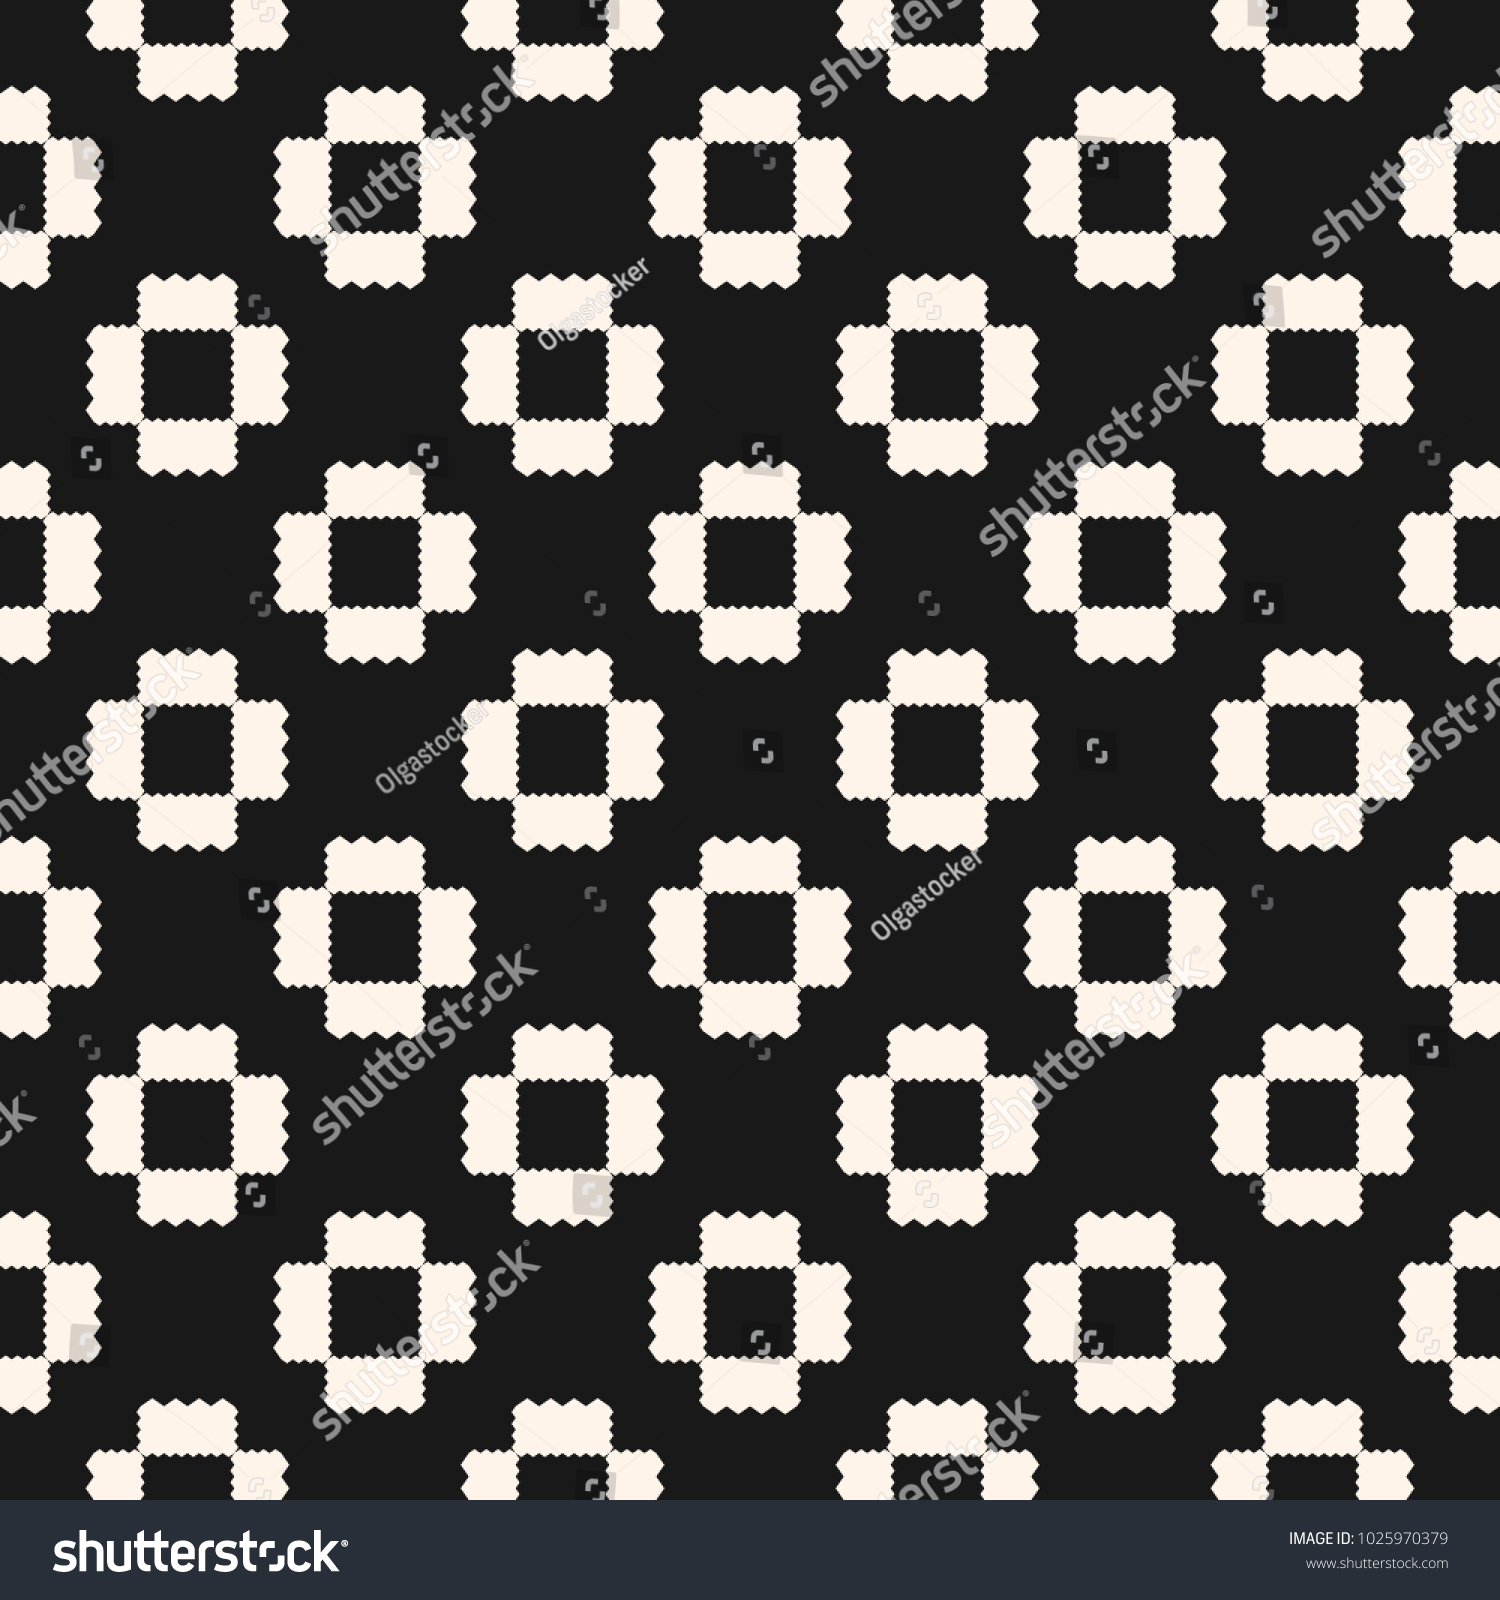 Raster Geometric Ornament Pattern With Jagged Shapes, Repeat Tiles Ornamental